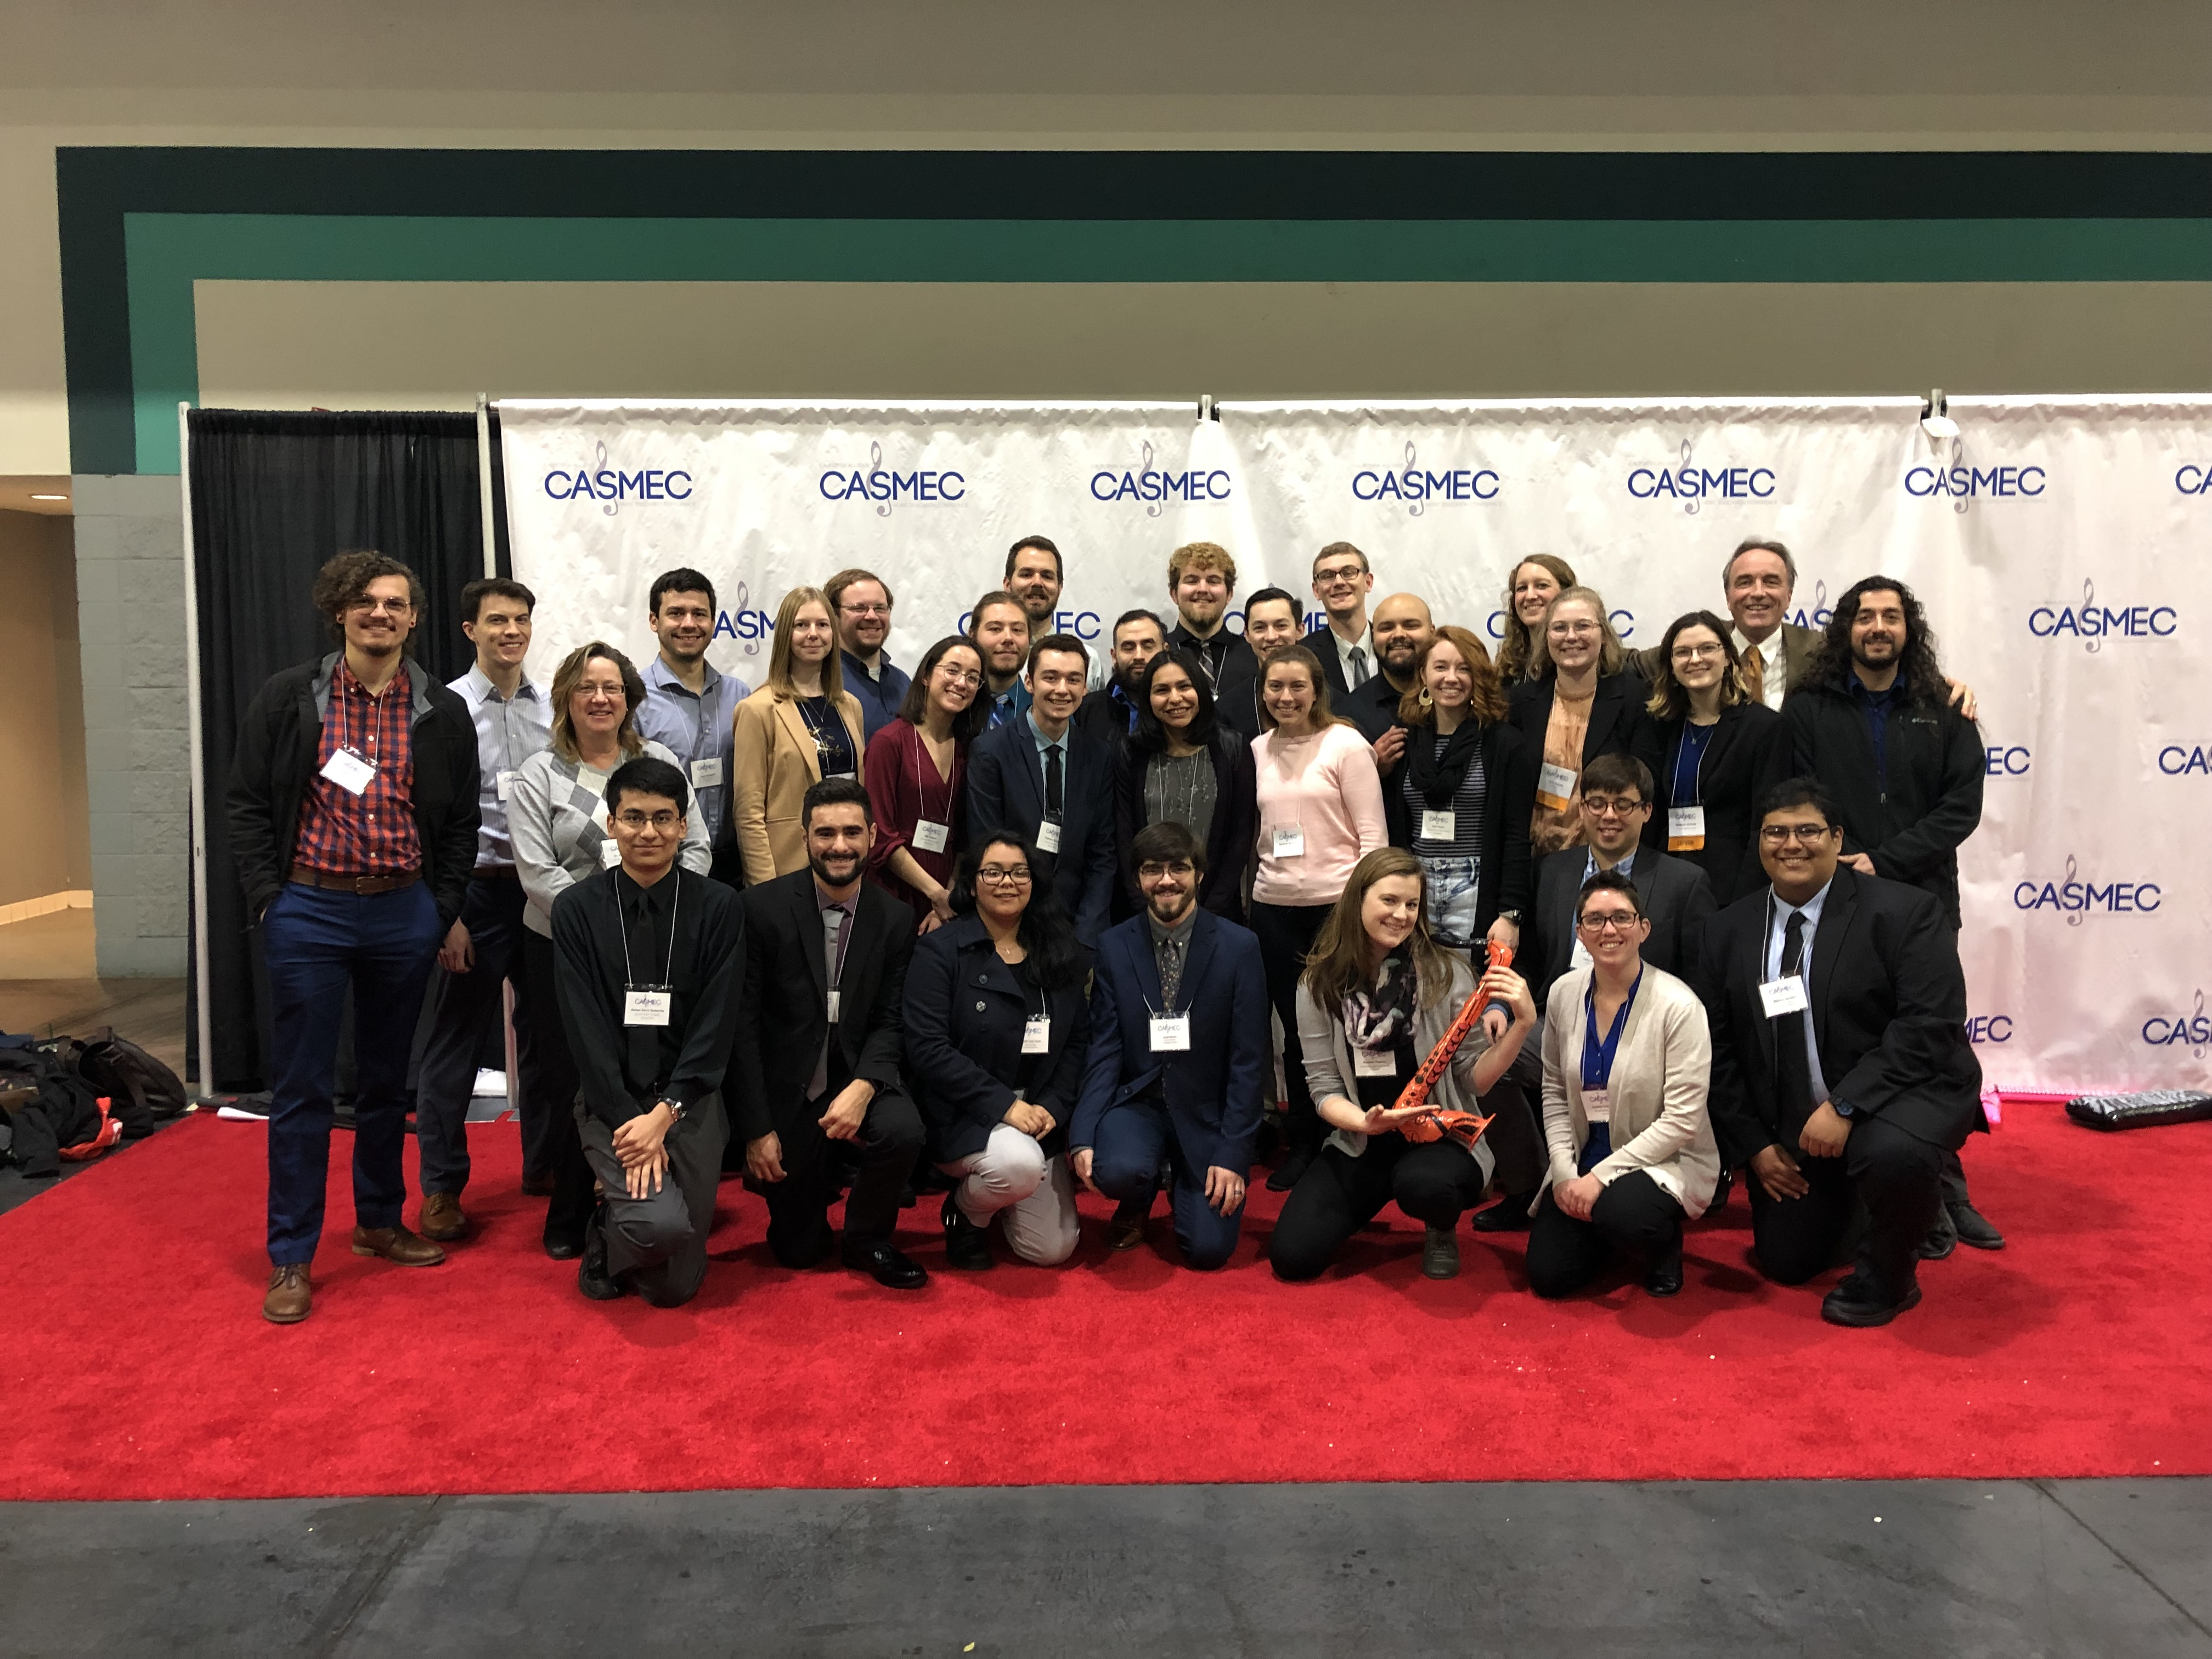 Group Picture of students in front of banner at CASMEC